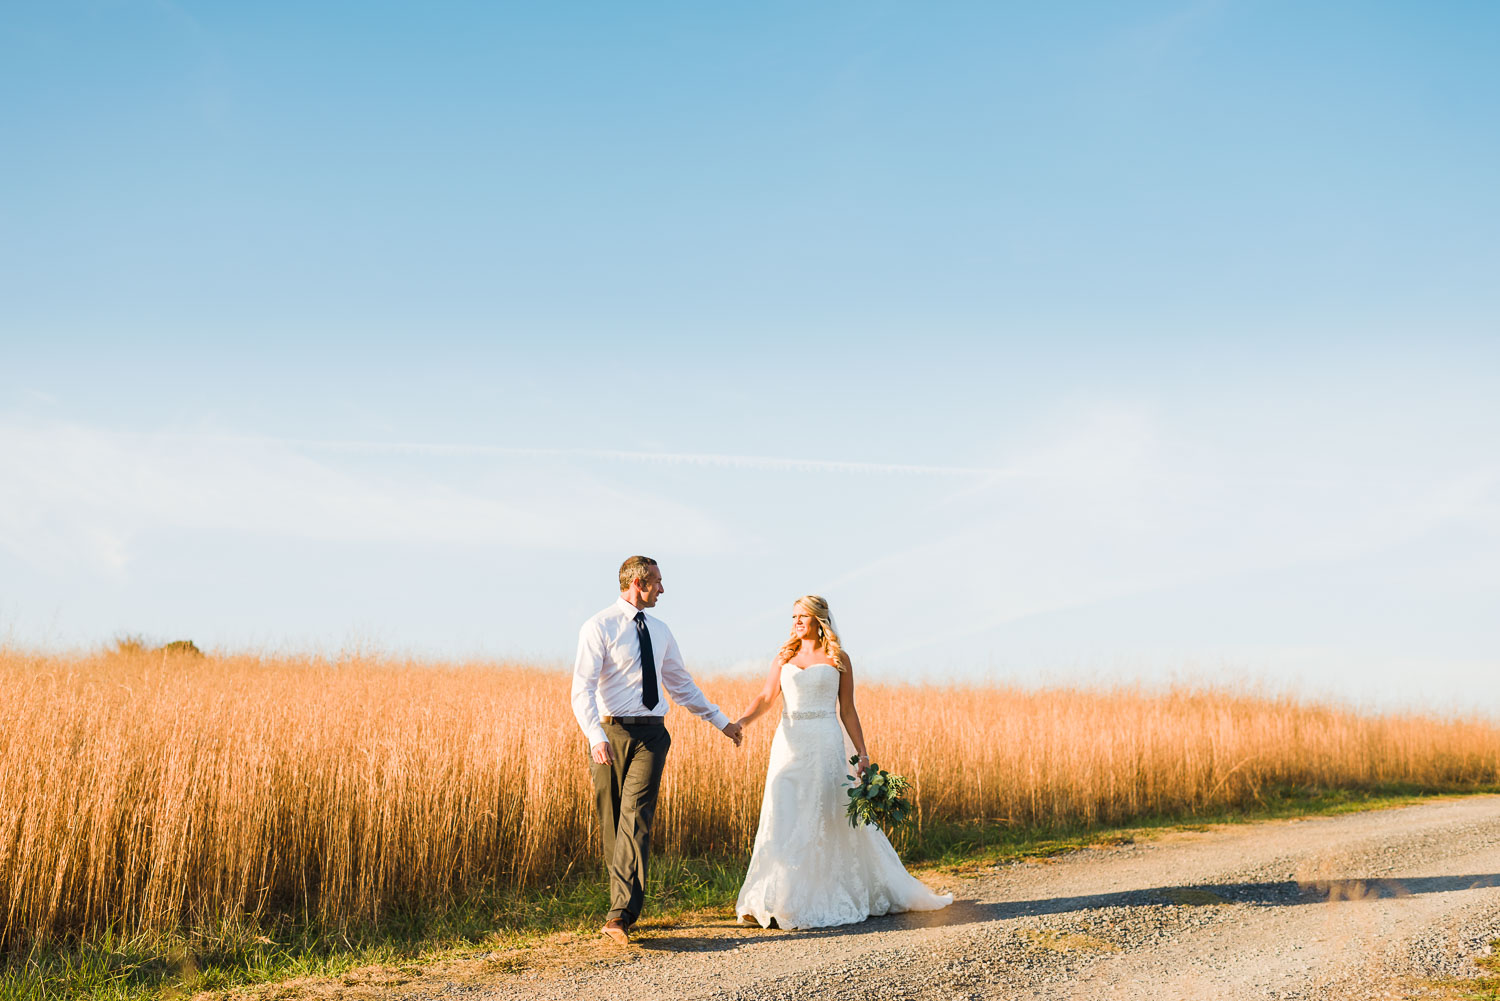 wedding couple walking at edge of brown field and big blue sky in the background in Tennessee.